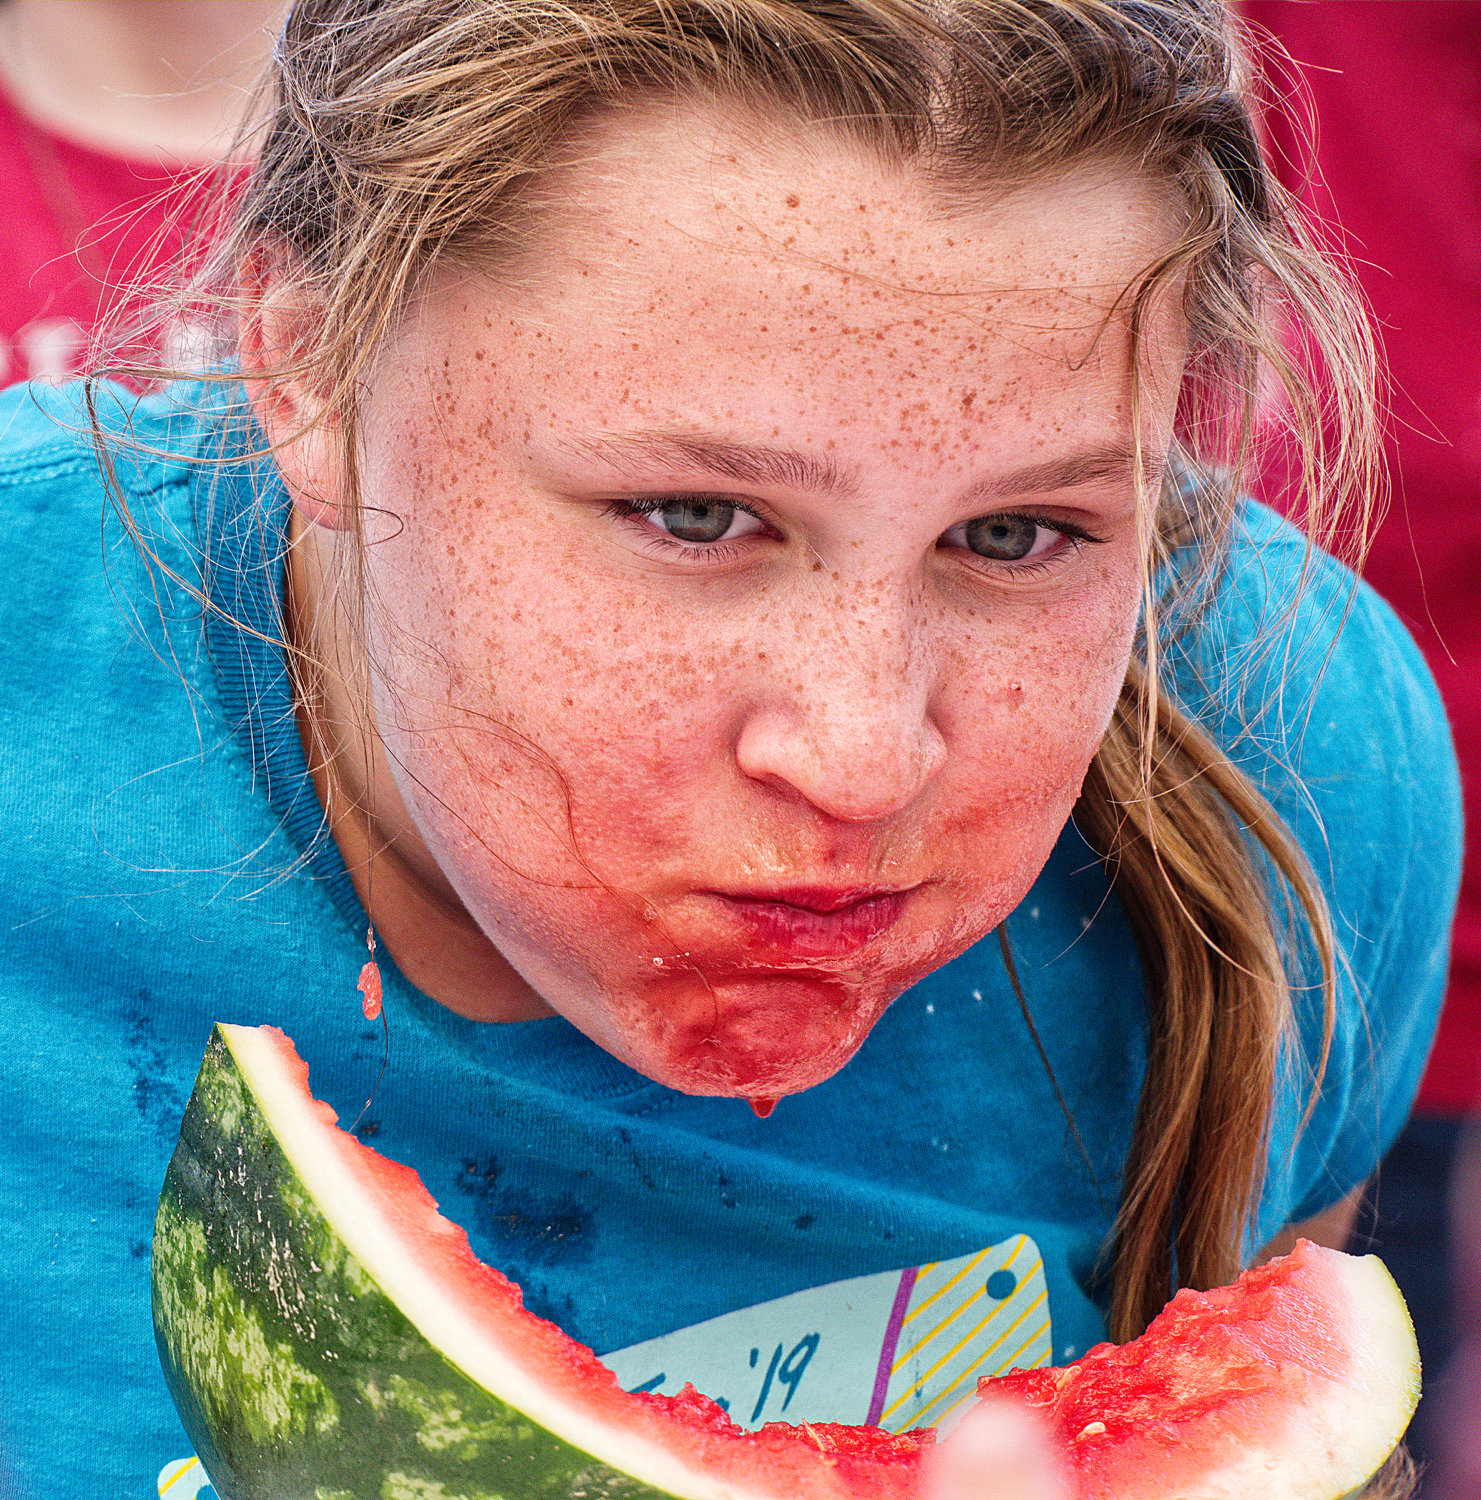 Carlee Cain of Mineola competes in the watermelon-eating contest during the Iron Horse Festival Saturday in downtown Mineola, which she won.